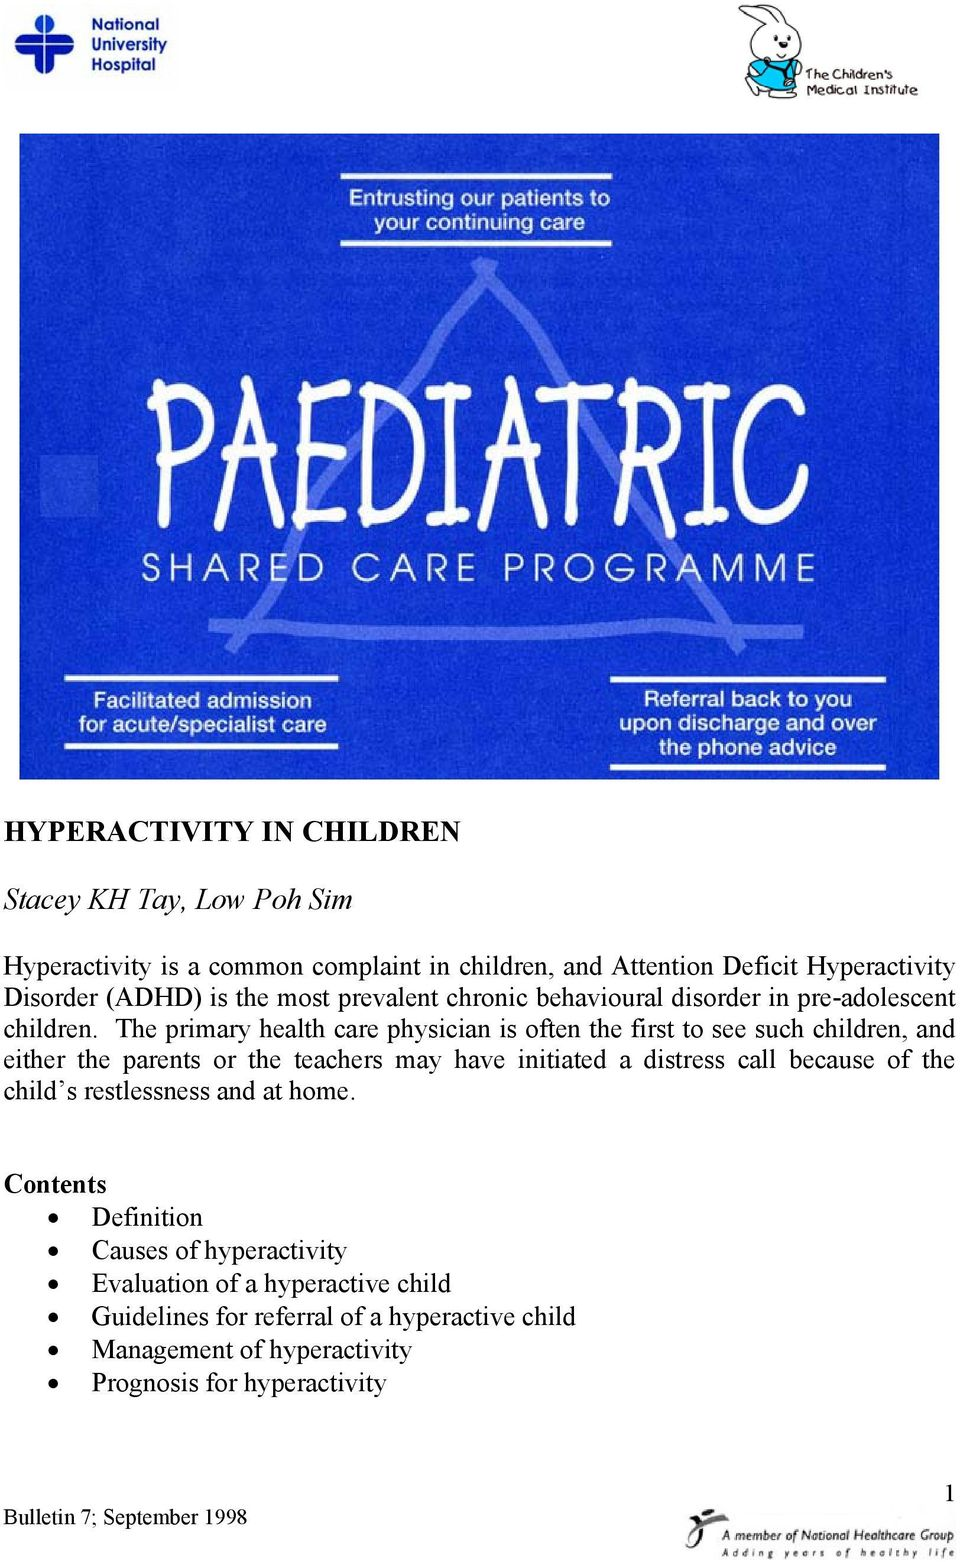 The primary health care physician is often the first to see such children, and either the parents or the teachers may have initiated a distress call